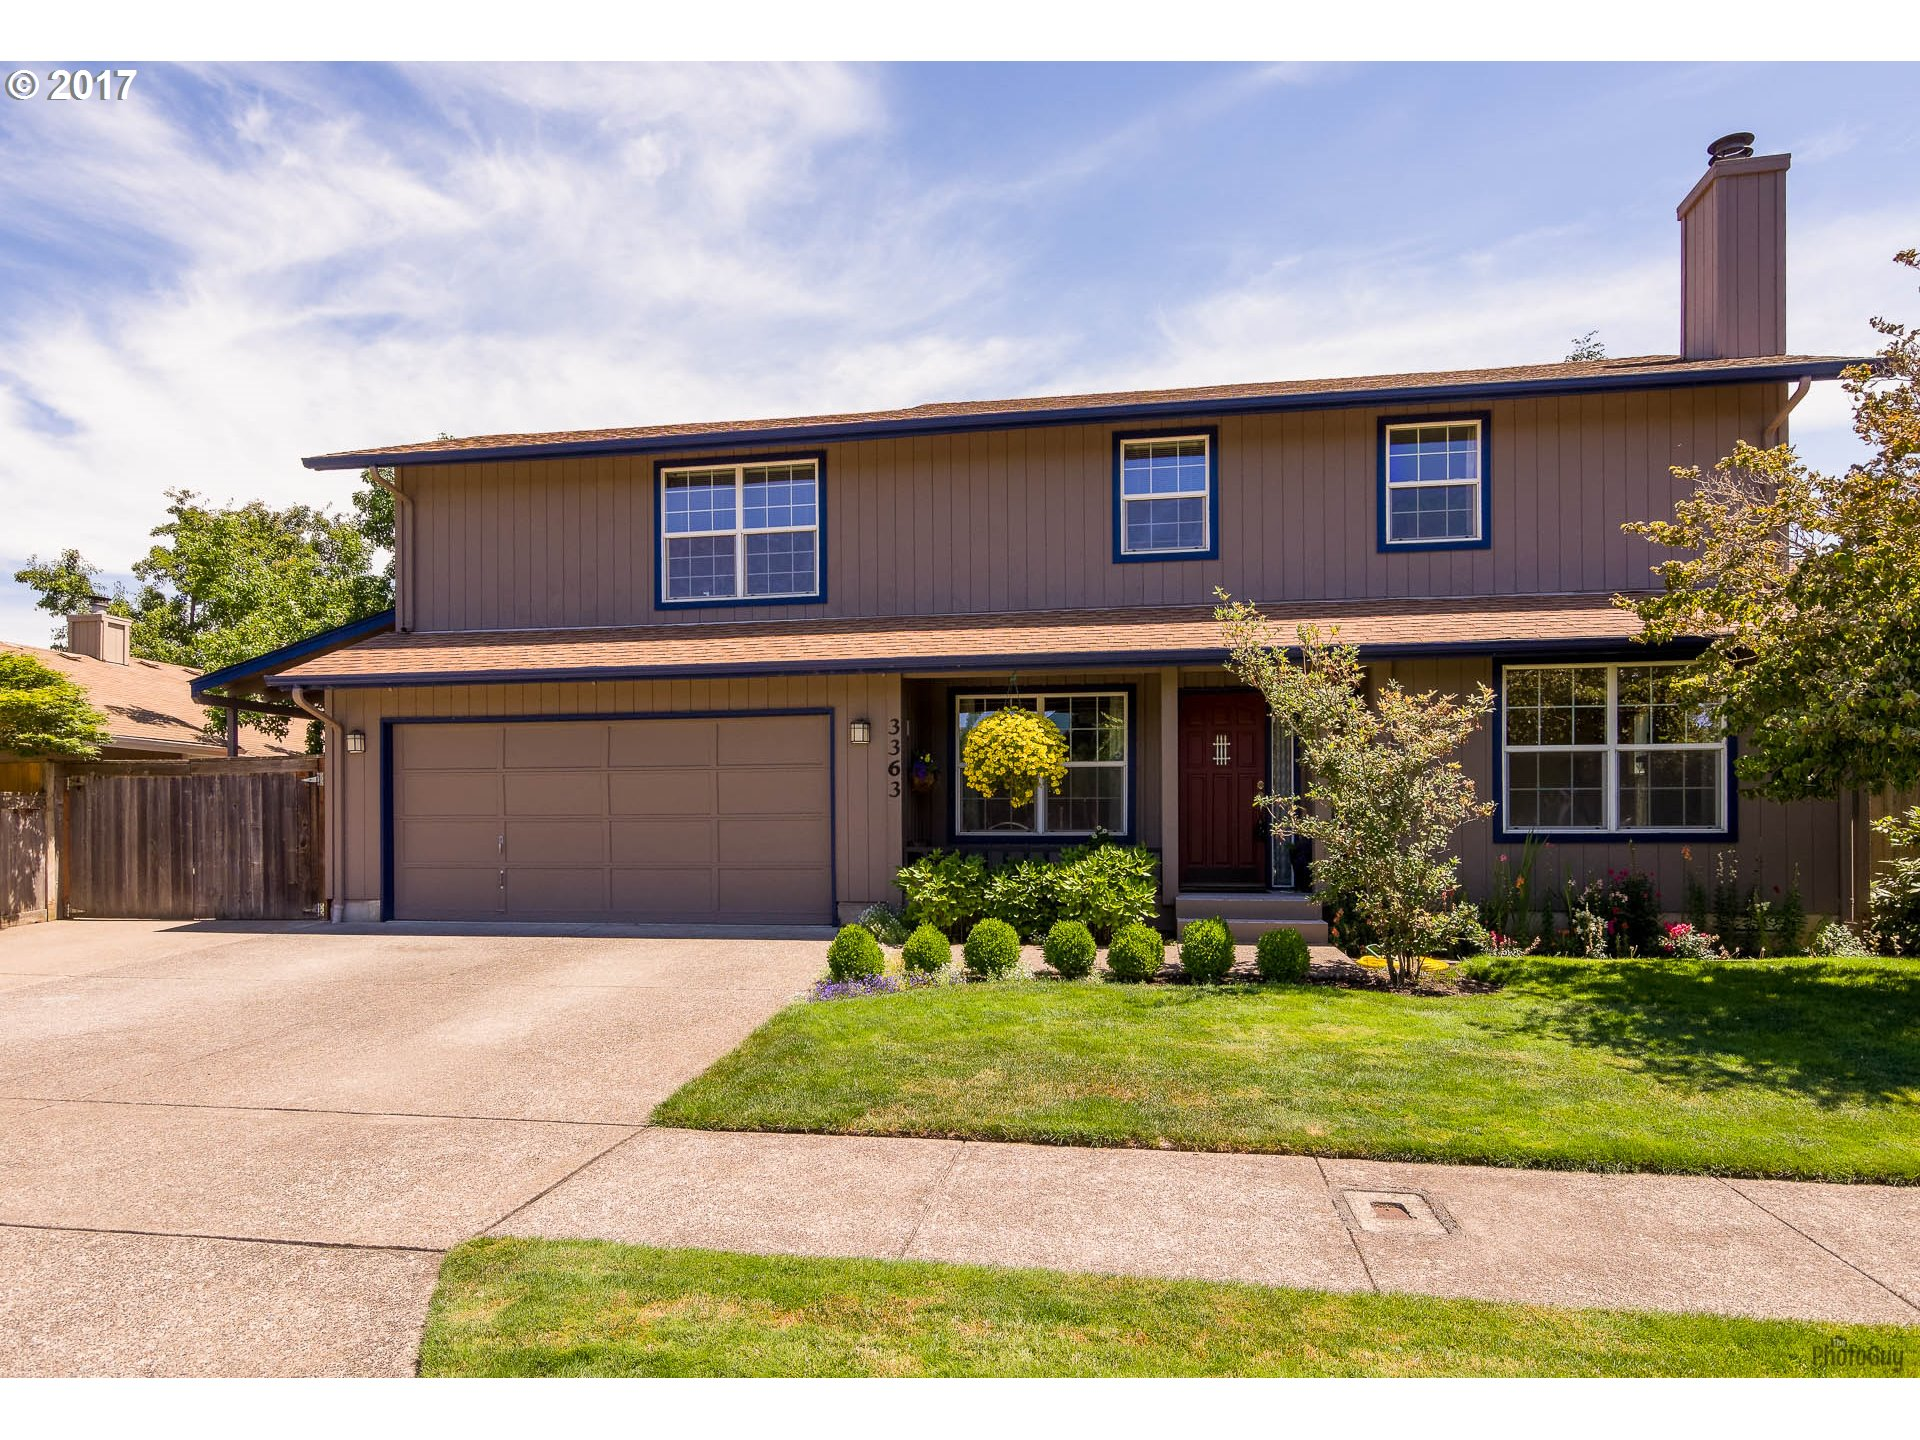 3363 HONEYWOOD ST, Eugene OR 97408